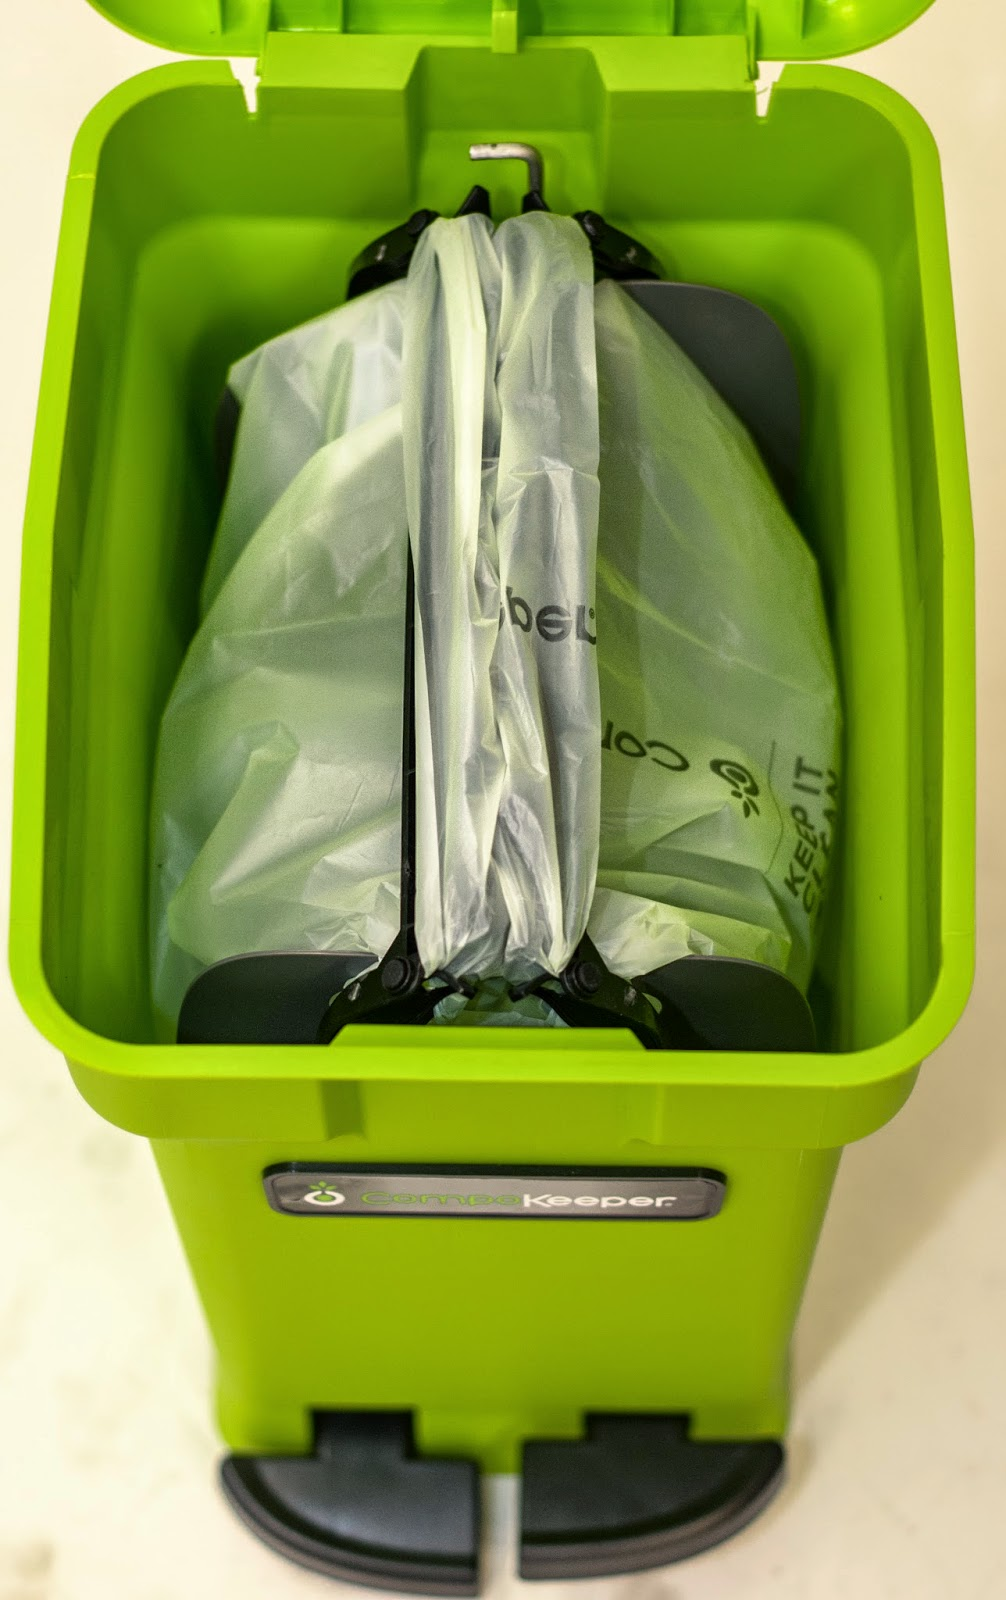 kitchen composting bin image